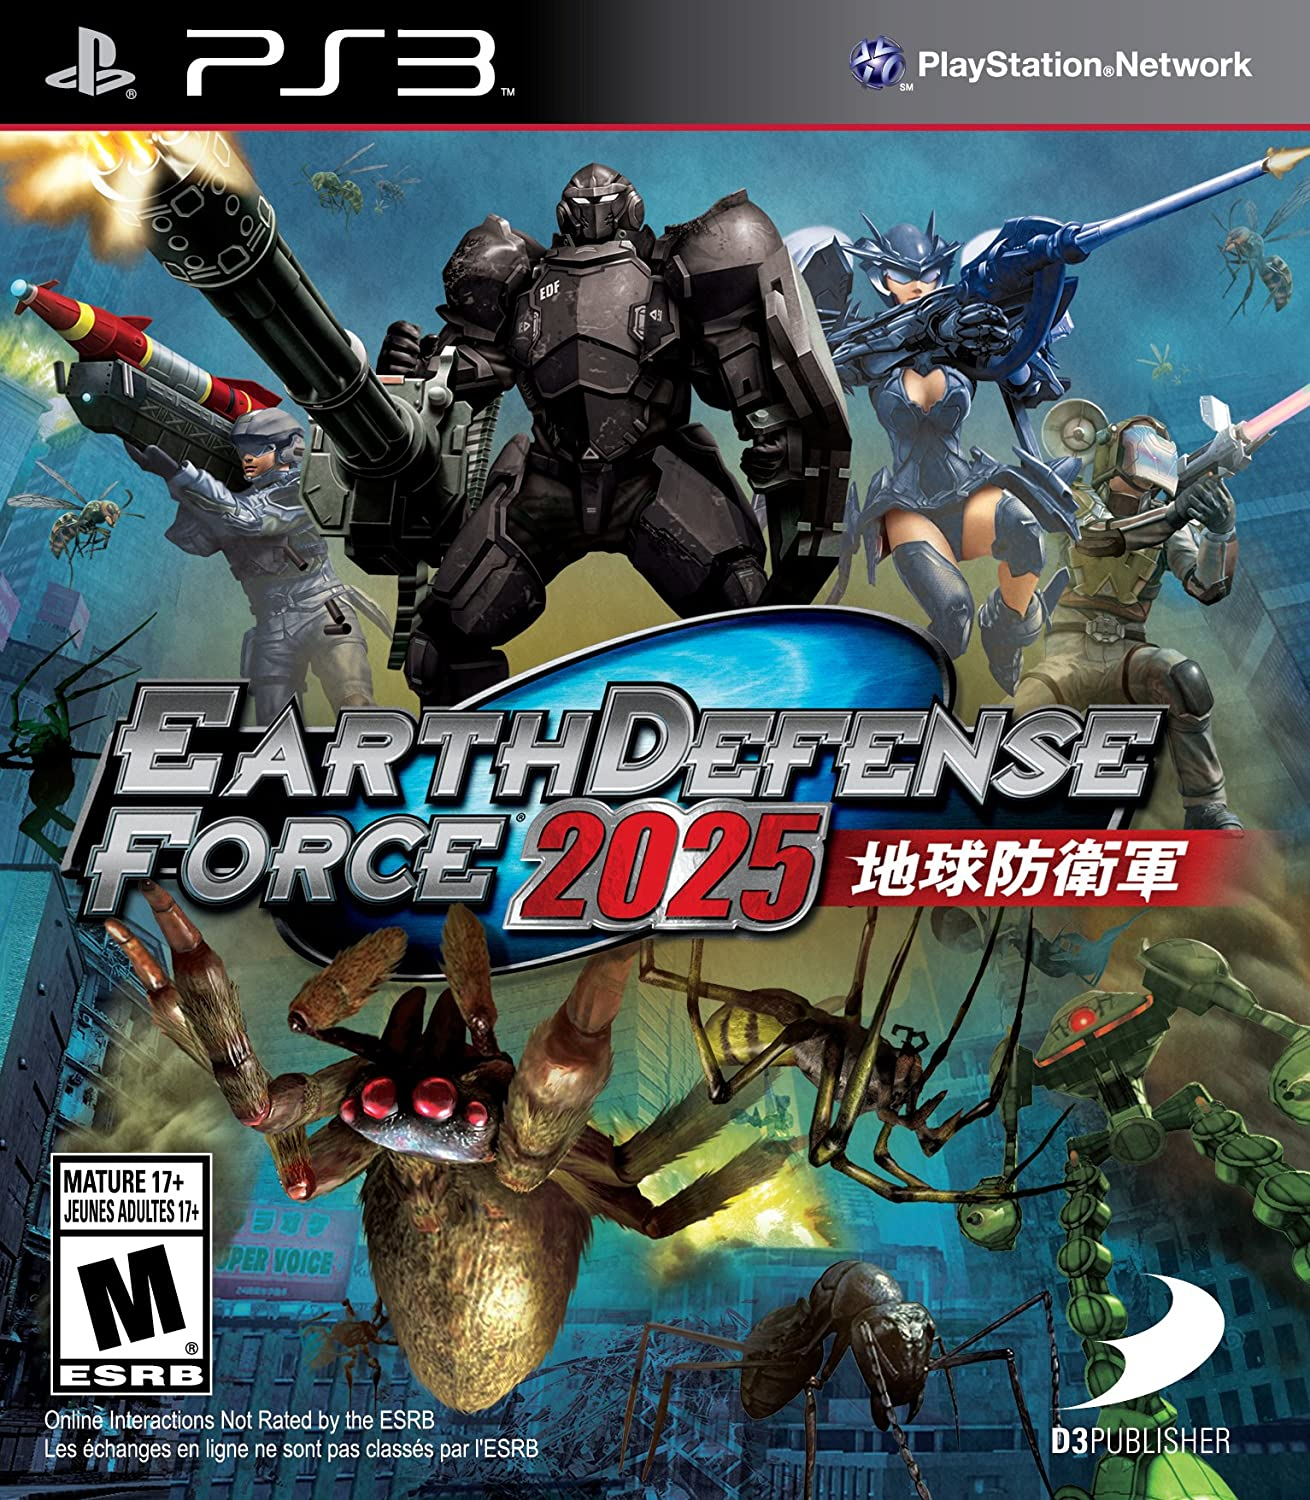 Amazon com: Earth Defense Force 2025 - Playstation 3: D3 Publisher